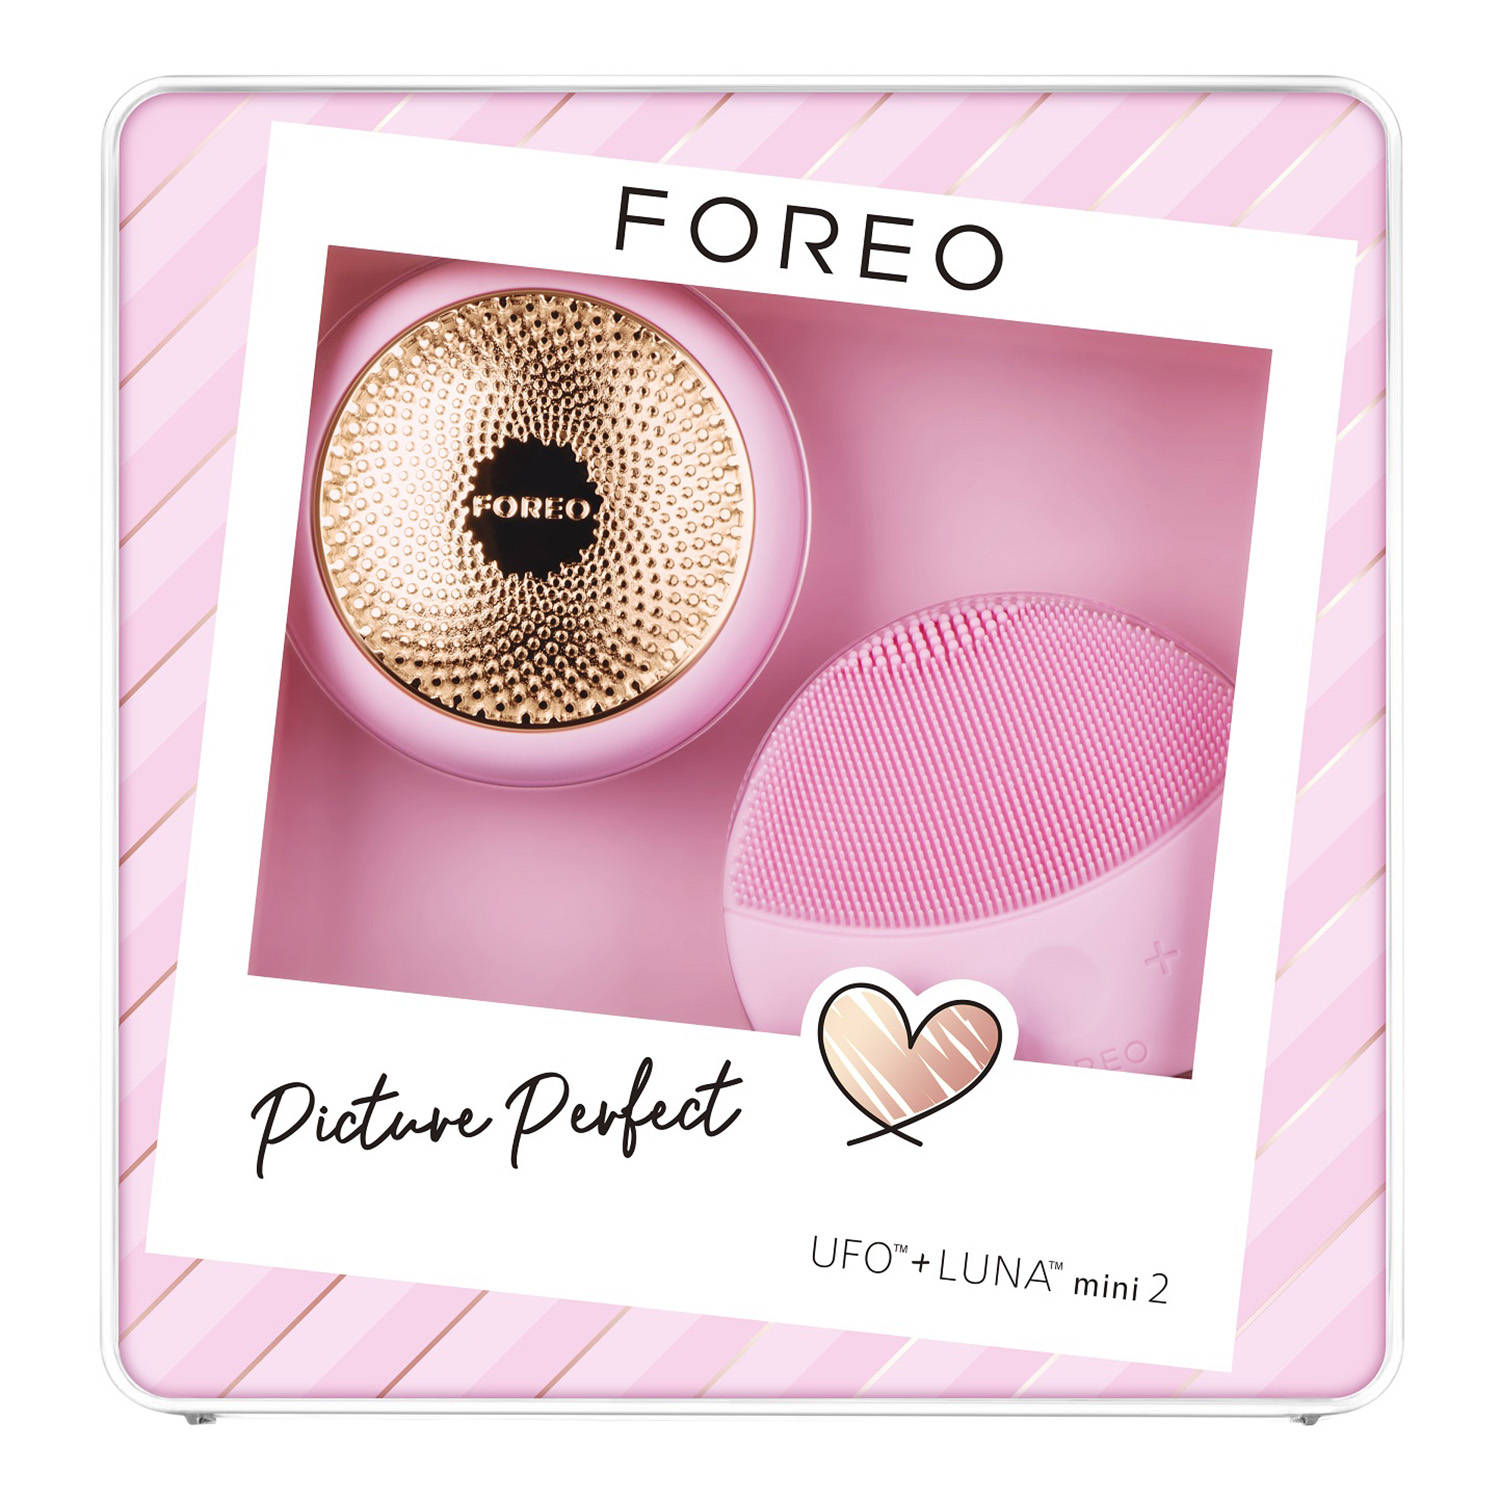 Set de Regalo Picture Perfect: UFO + LUNA mini 2 de Foreo